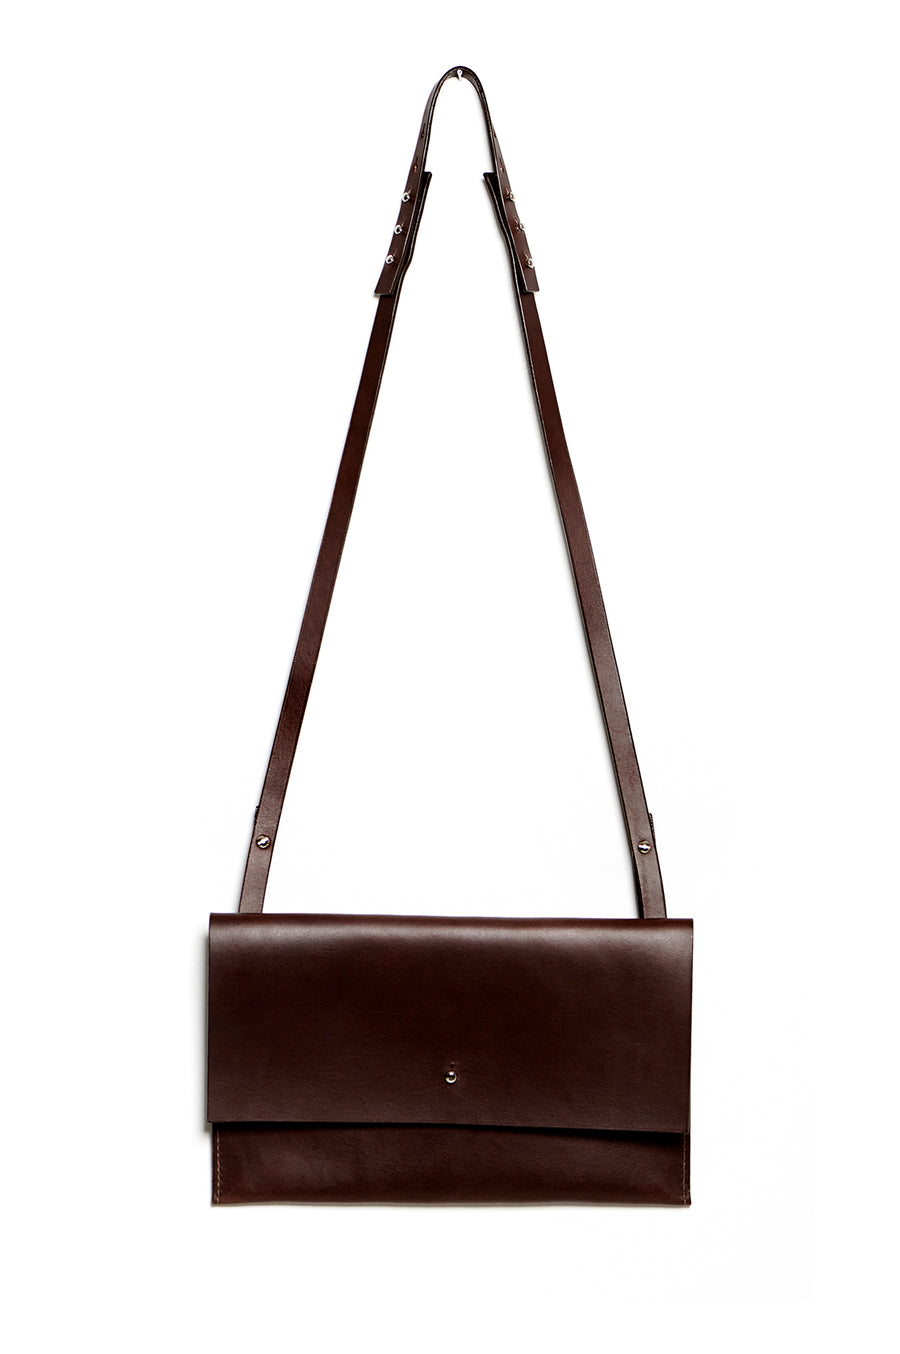 RIGMOR MEGA clutch & shoulder bag (dark brown)